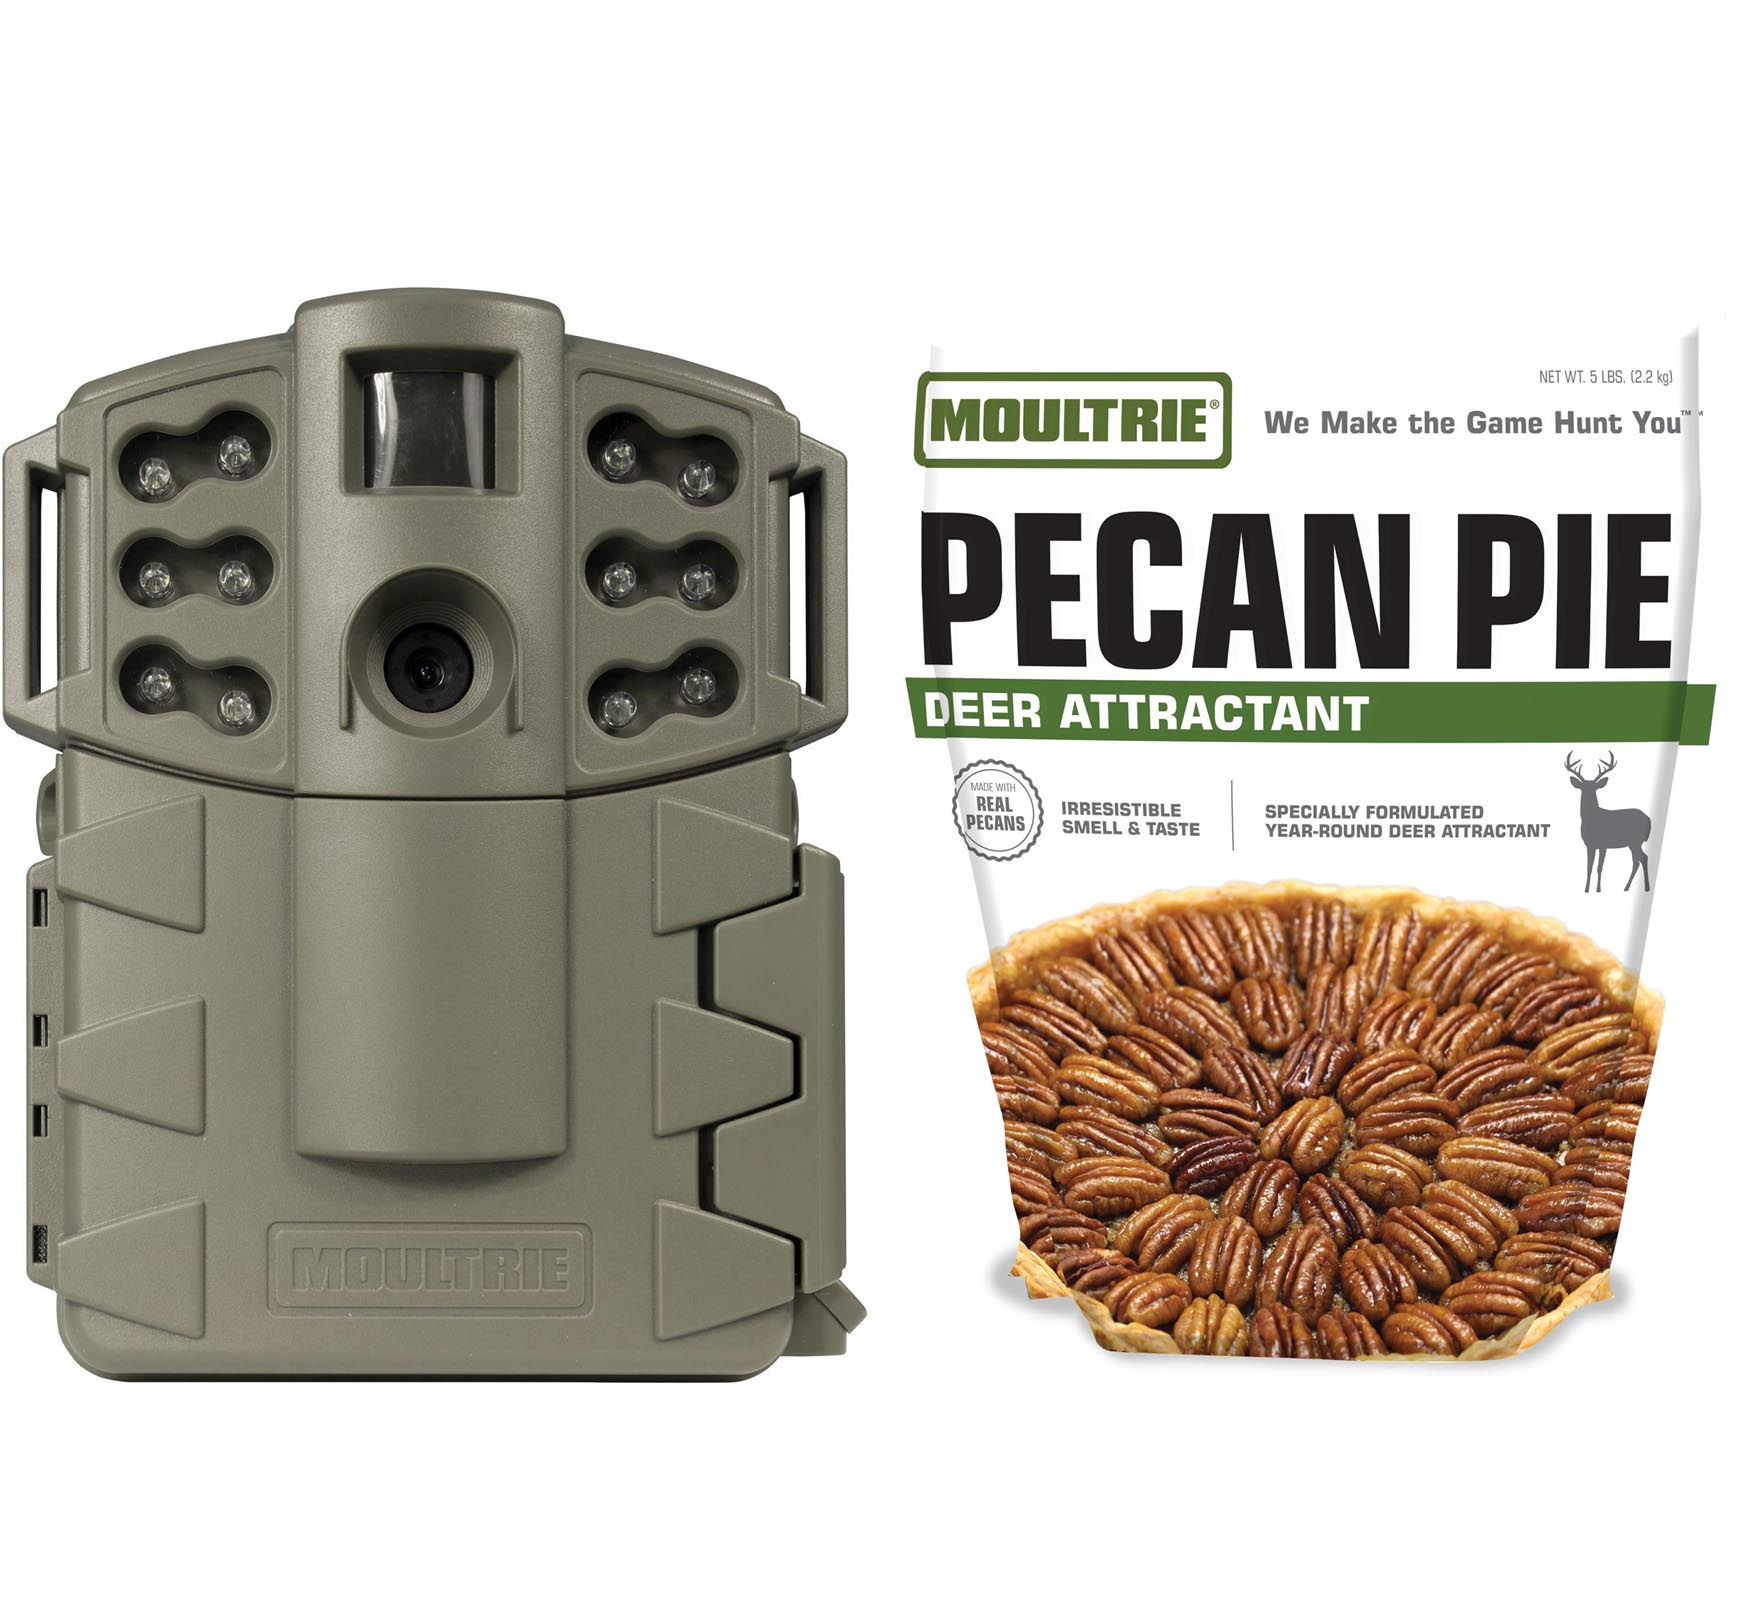 Cheap Offer Moultrie Game Spy A-5 Gen 2 5MP Low Glow IR Game Camera + Deer Attractant Mix Before Too Late